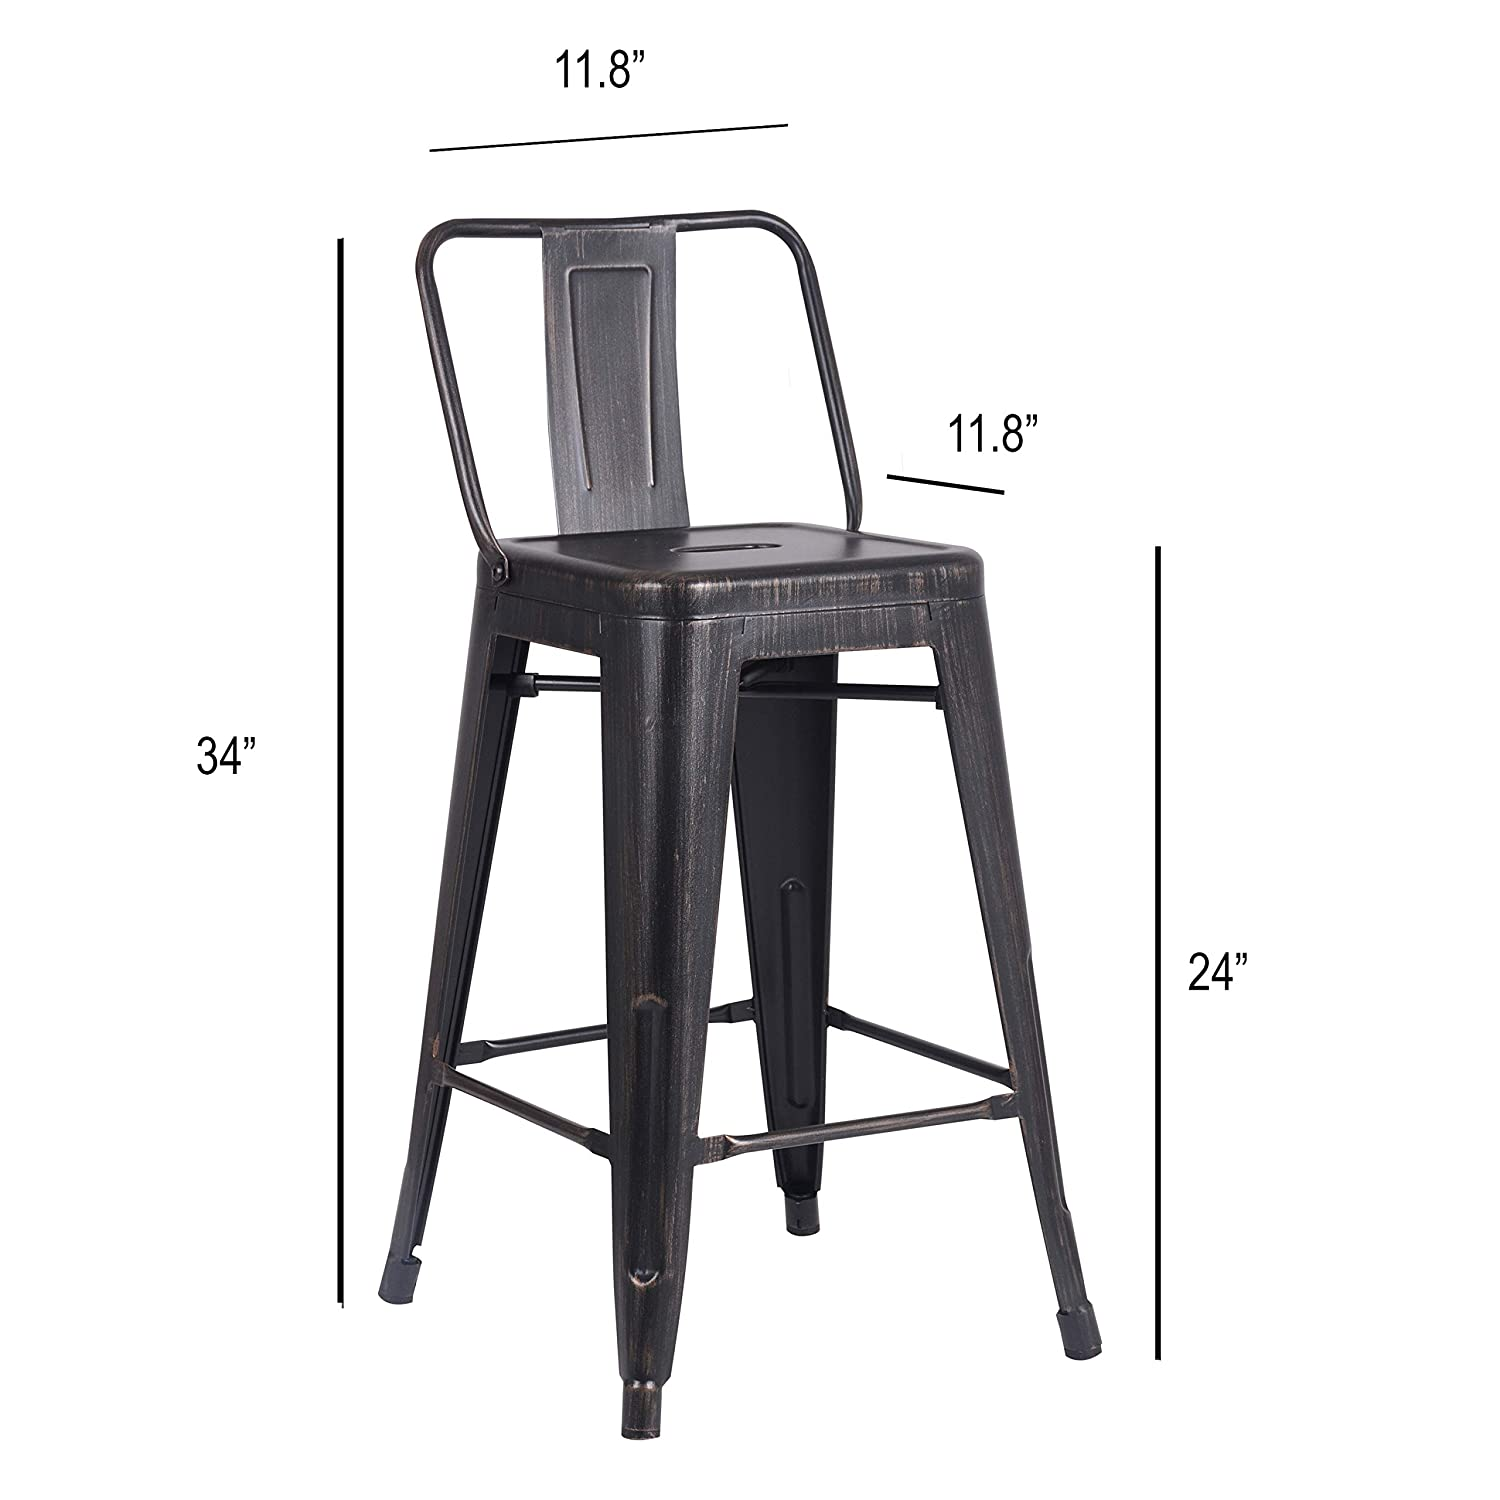 AC Pacific Modern Industrial Metal Barstool with Bucket Back and 4 Leg Design, 24 Seat Bar Stools Set of 2 , Distressed Black Finish